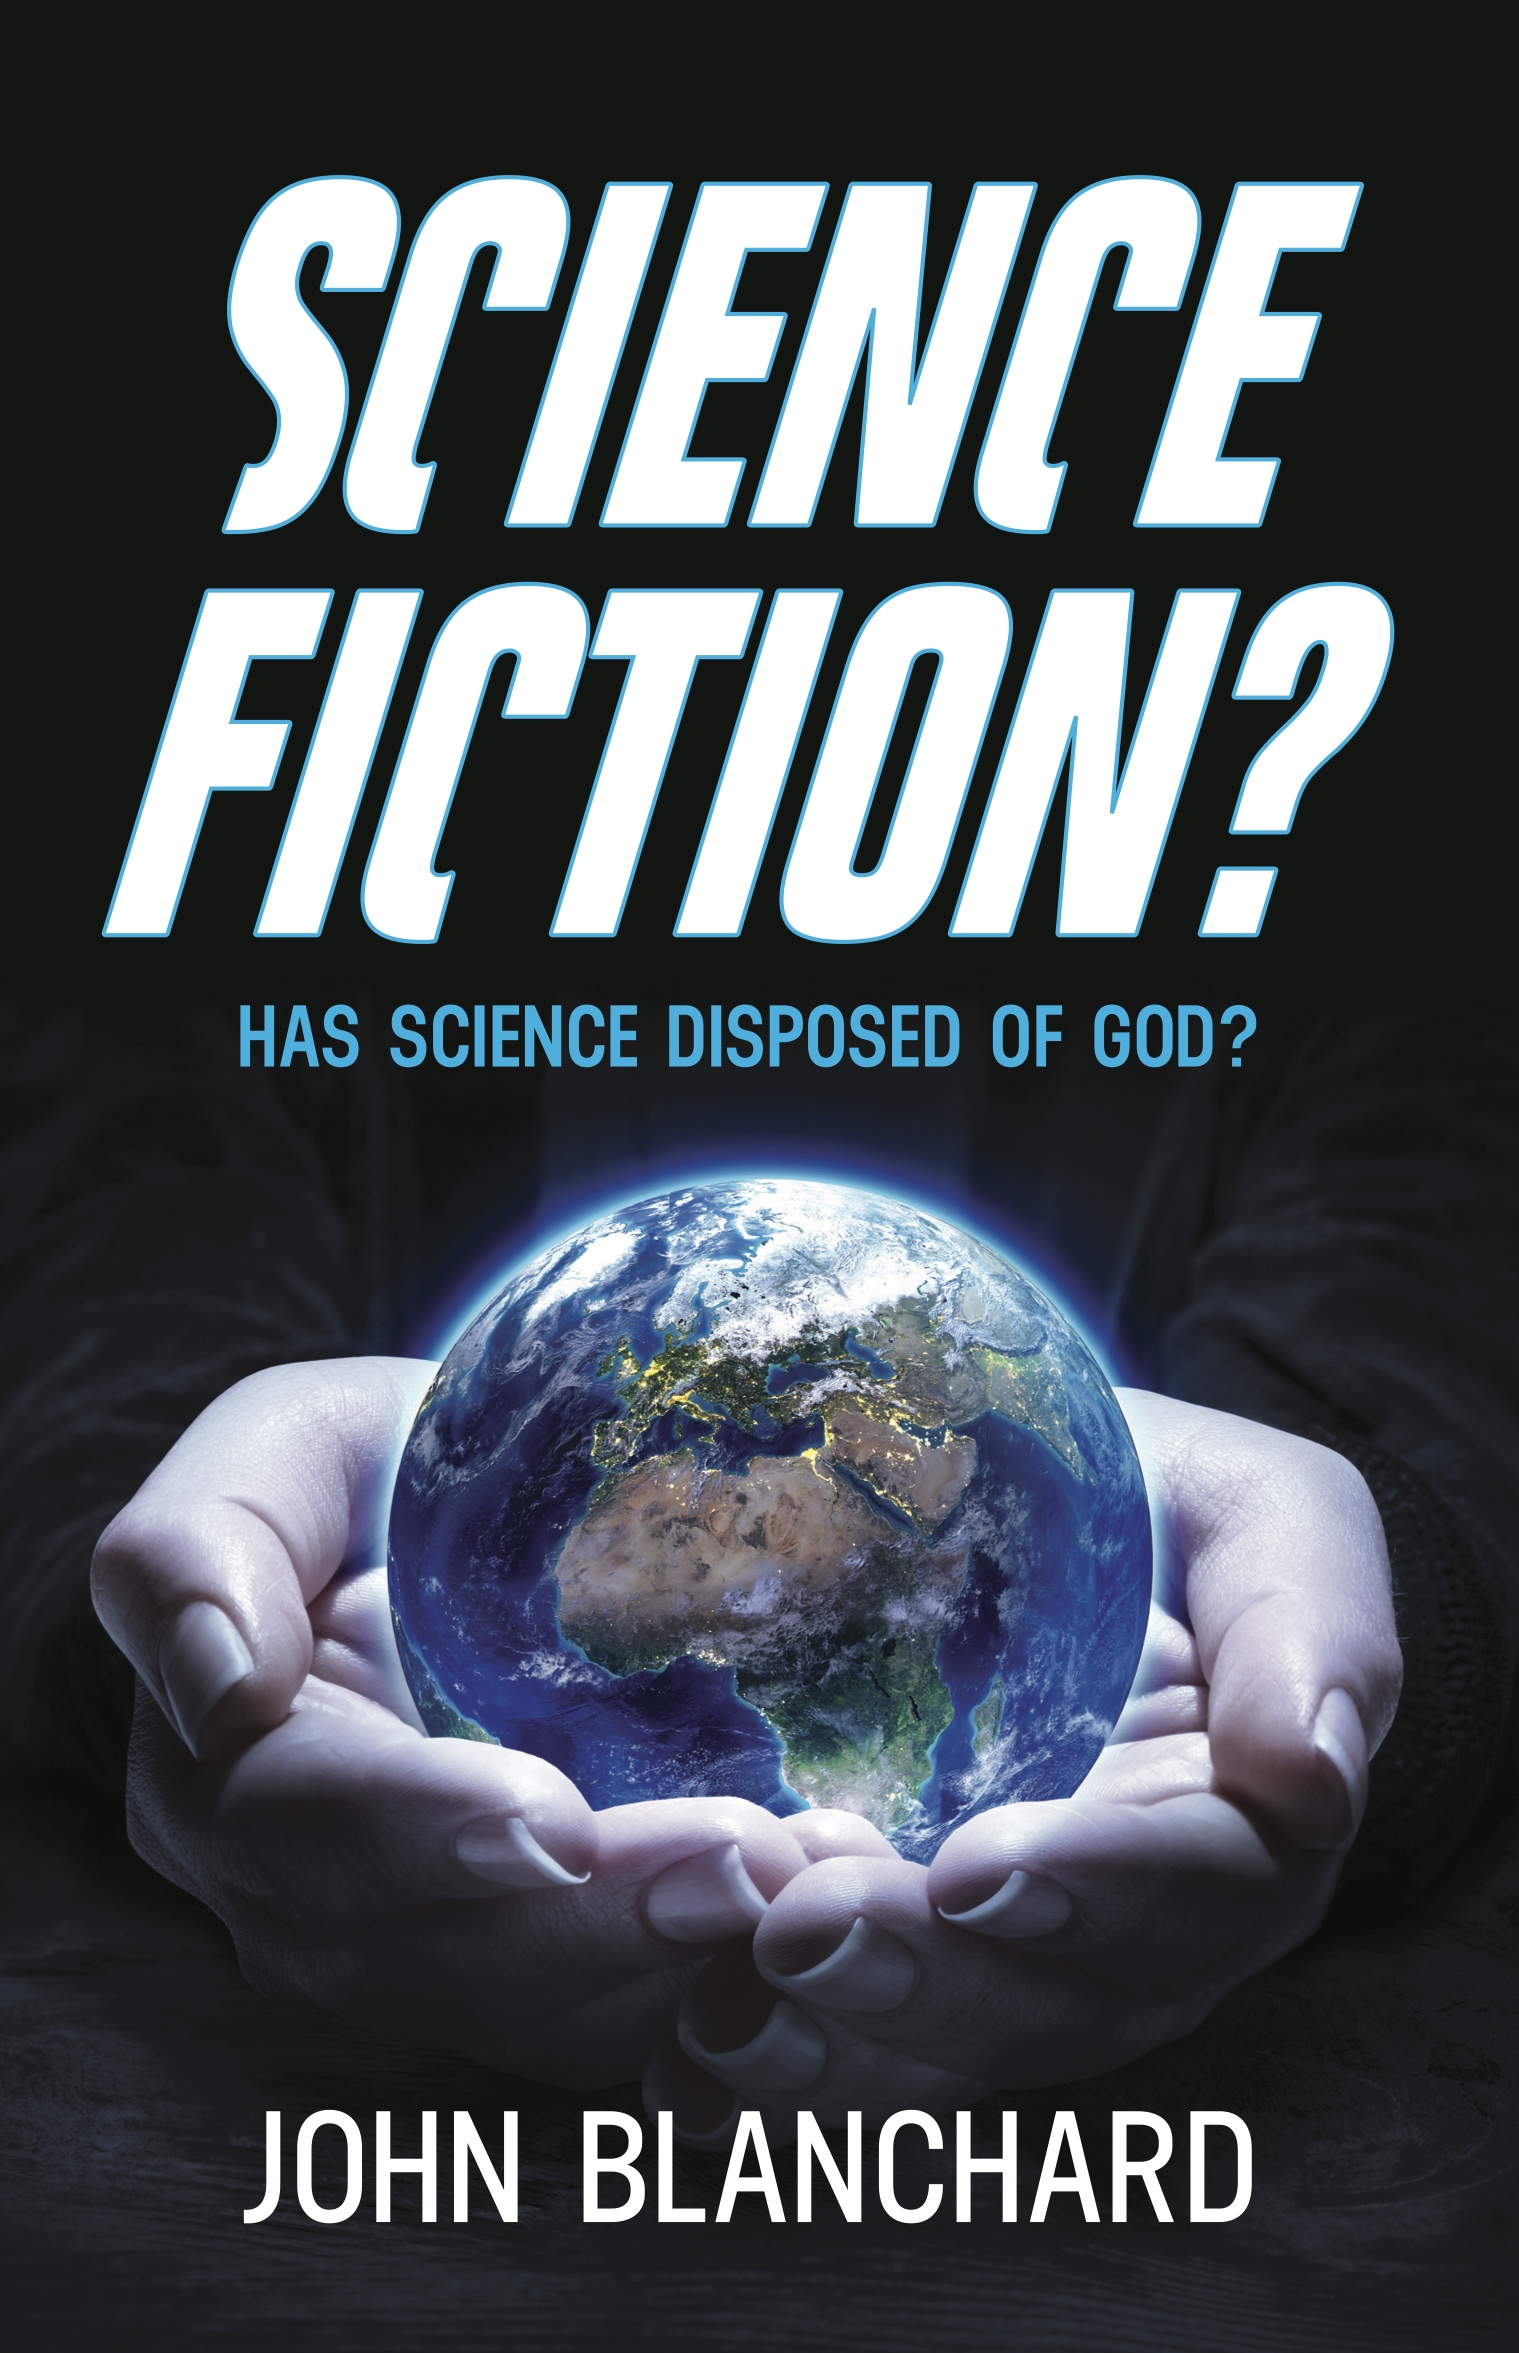 Ep Books The Store For Books: Science Fiction ? Has Science Disposed Of God ?